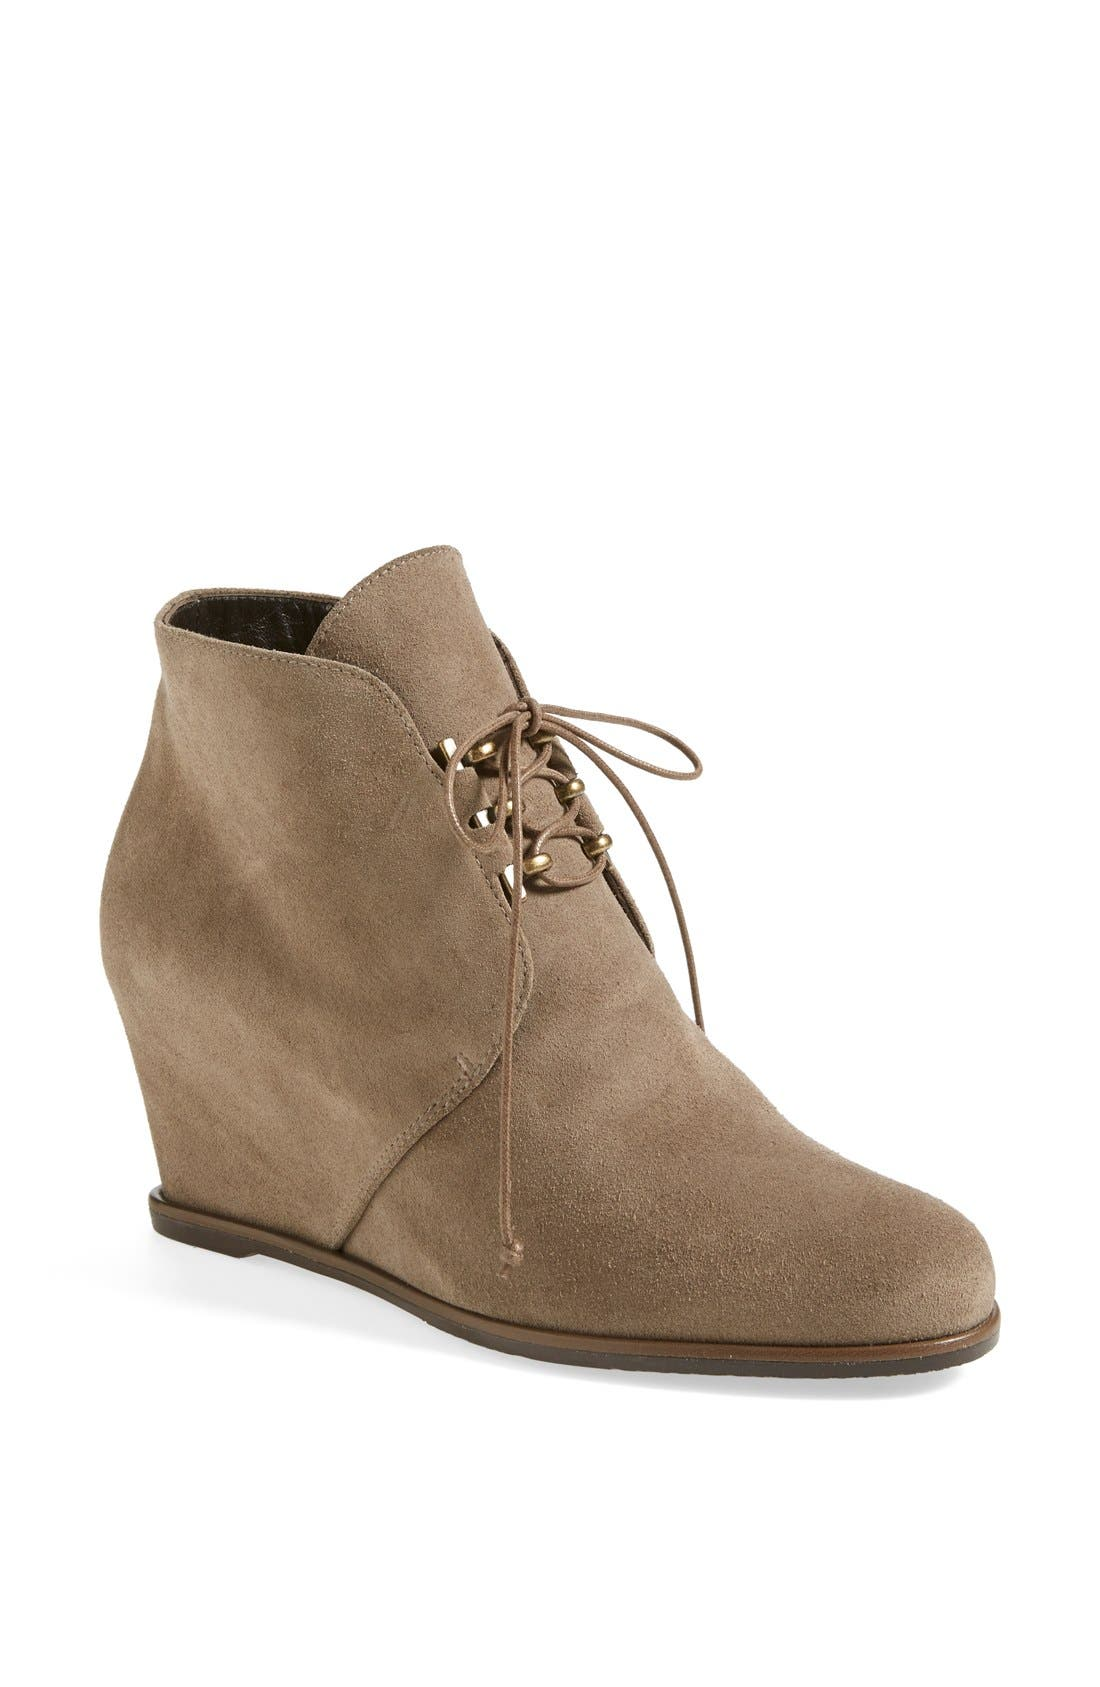 Main Image - Stuart Weitzman 'Comfort' Wedge Boot (Nordstrom Exclusive) (Women)